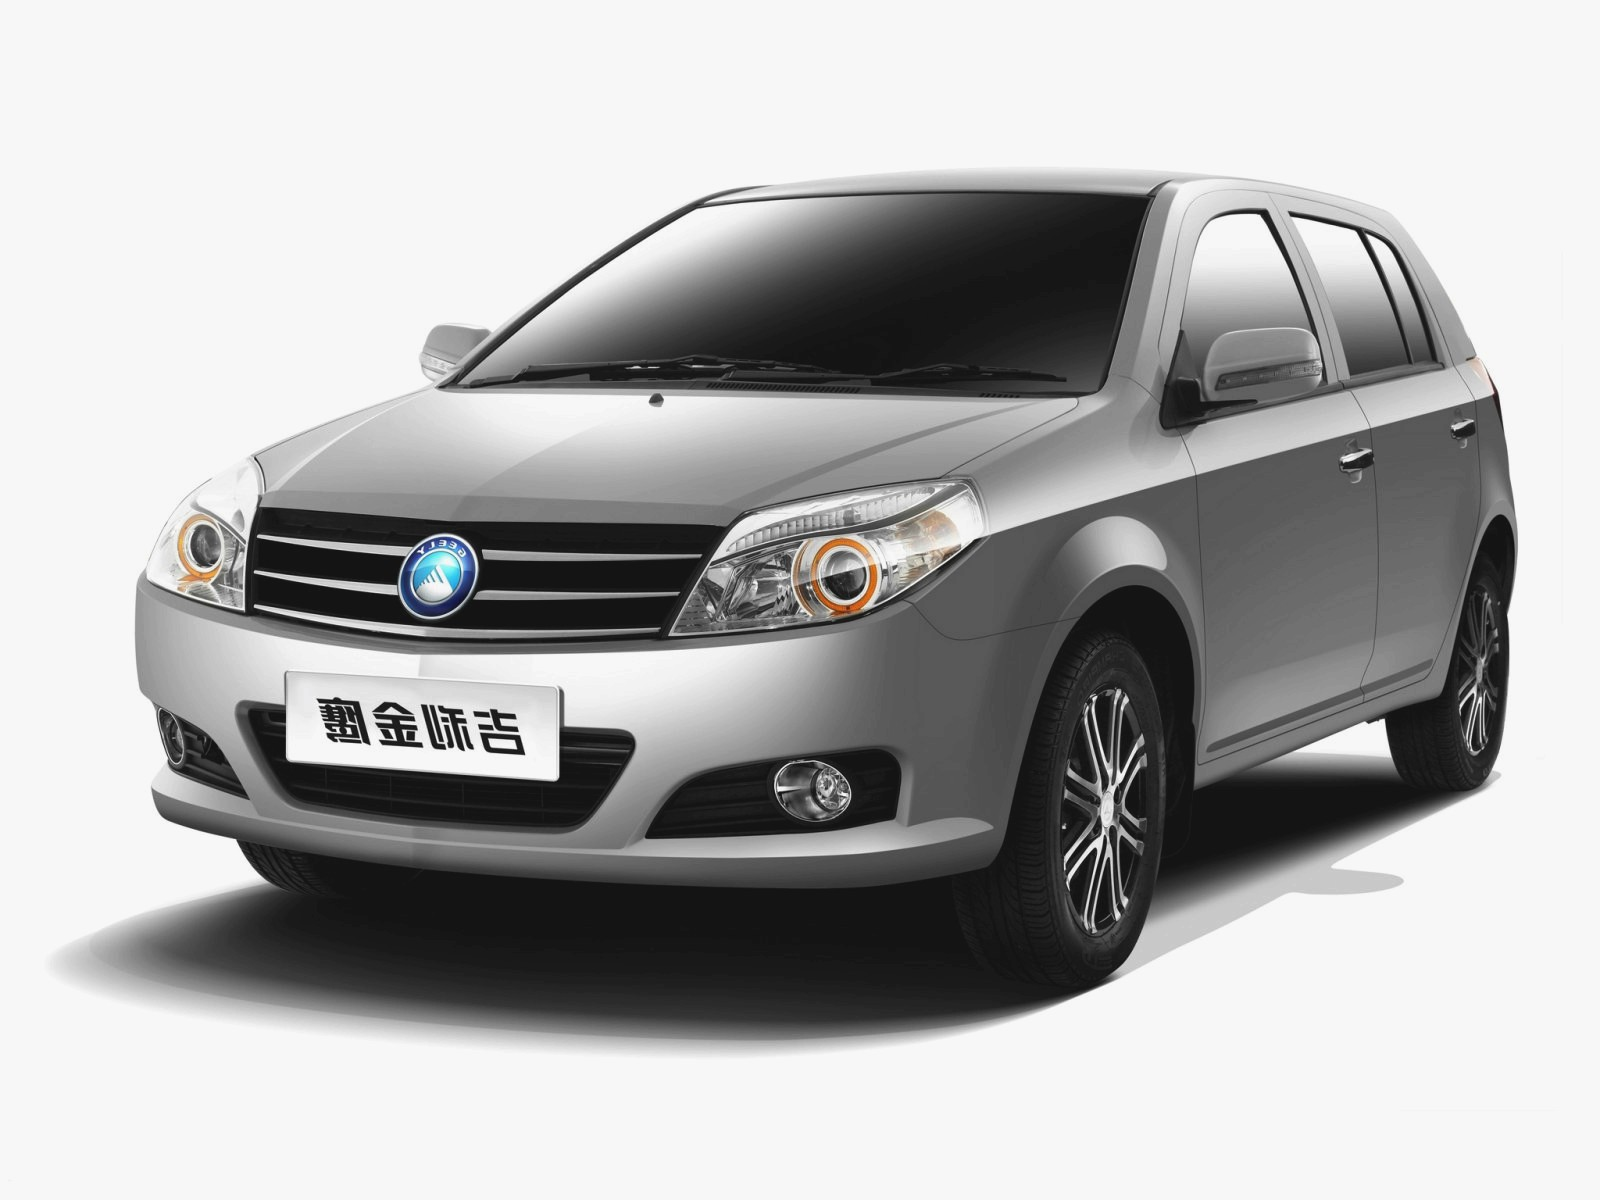 Geely vision photo - 10